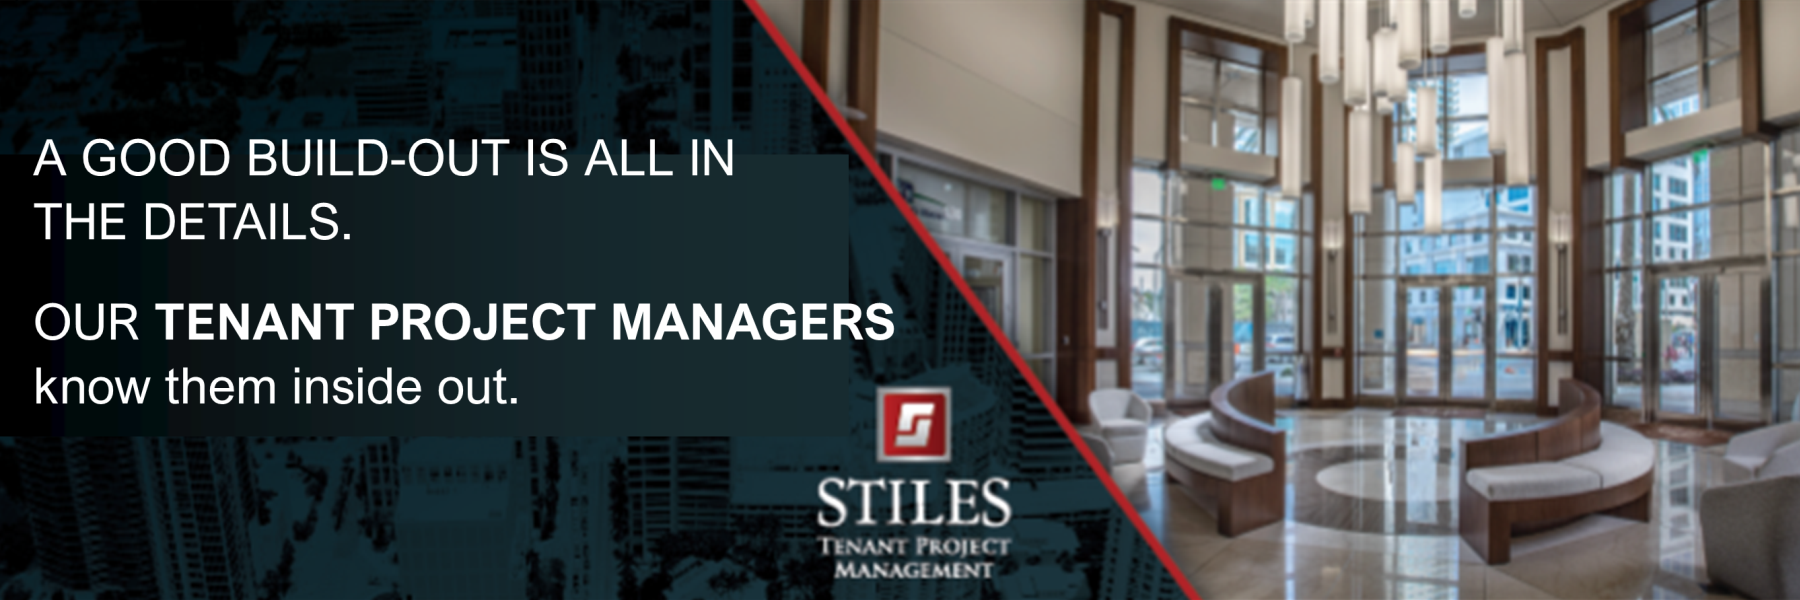 Stiles Tenant Project Management 1800x600